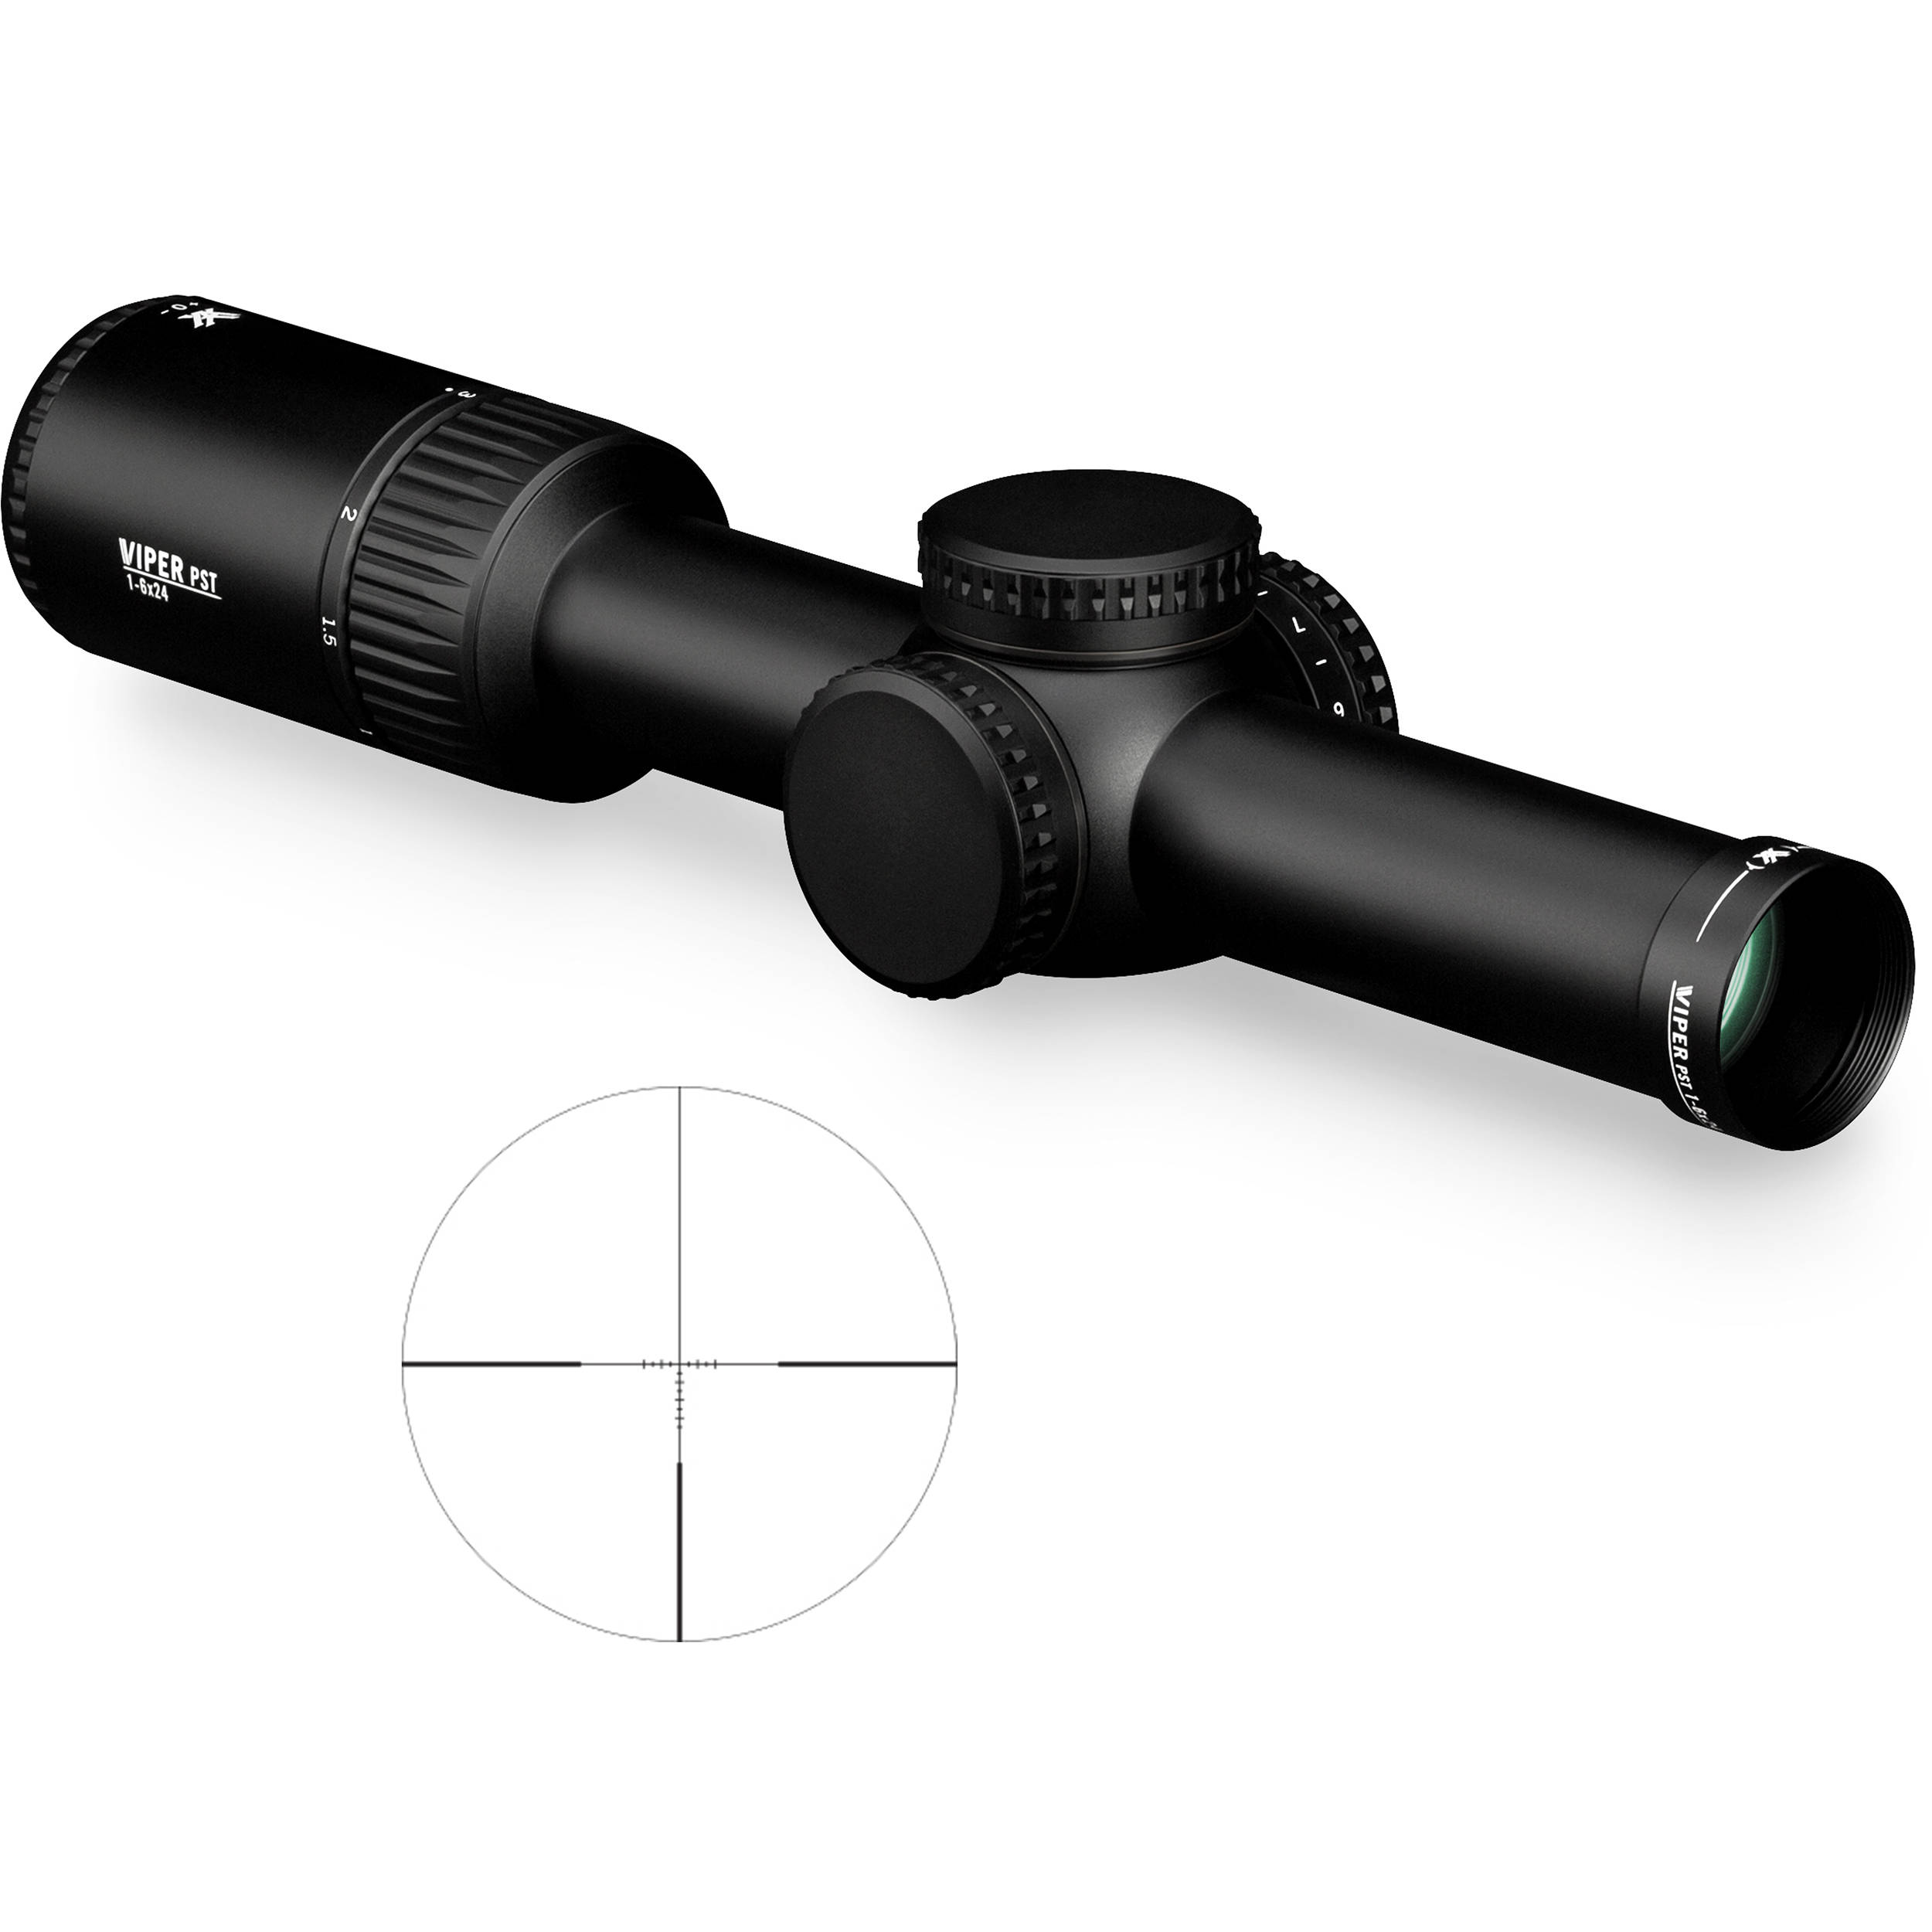 vortex 1 6x24 viper pst gen ii riflescope pst 1607 b h photo. Black Bedroom Furniture Sets. Home Design Ideas